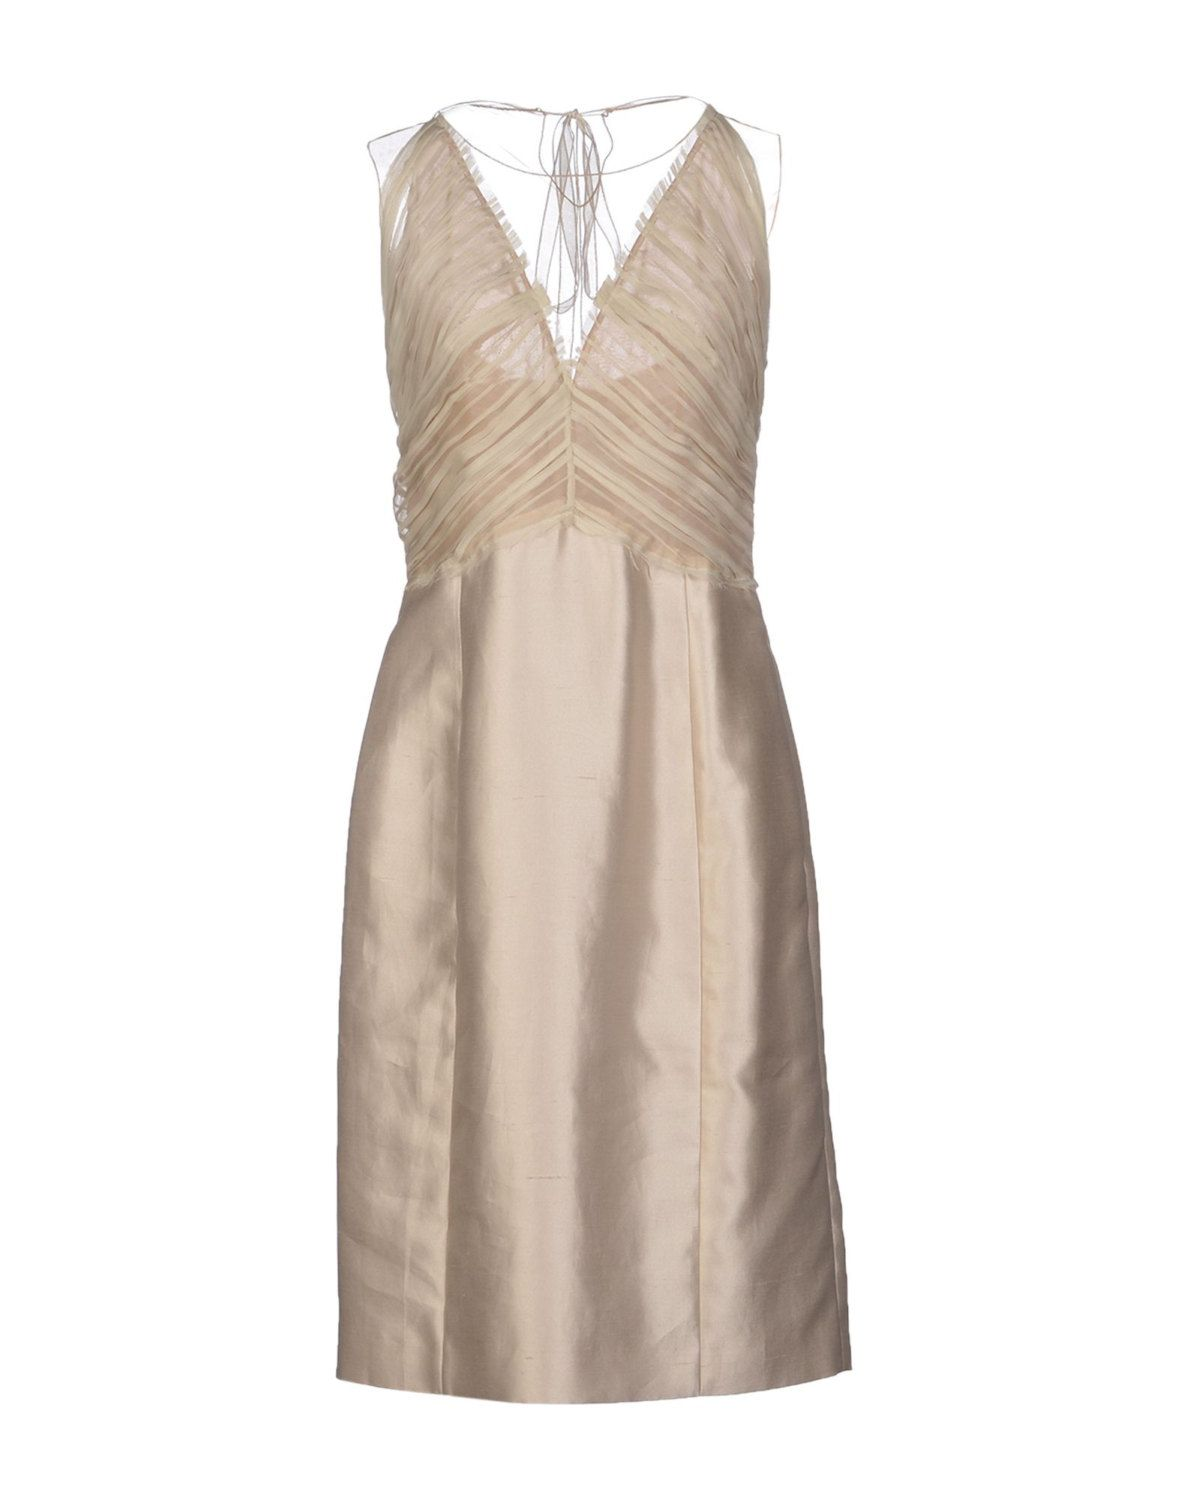 NWT Beige Alberta Ferreti Silk Shantung Evening Dress w/Zip Side Closure by MichelesPassion on Etsy